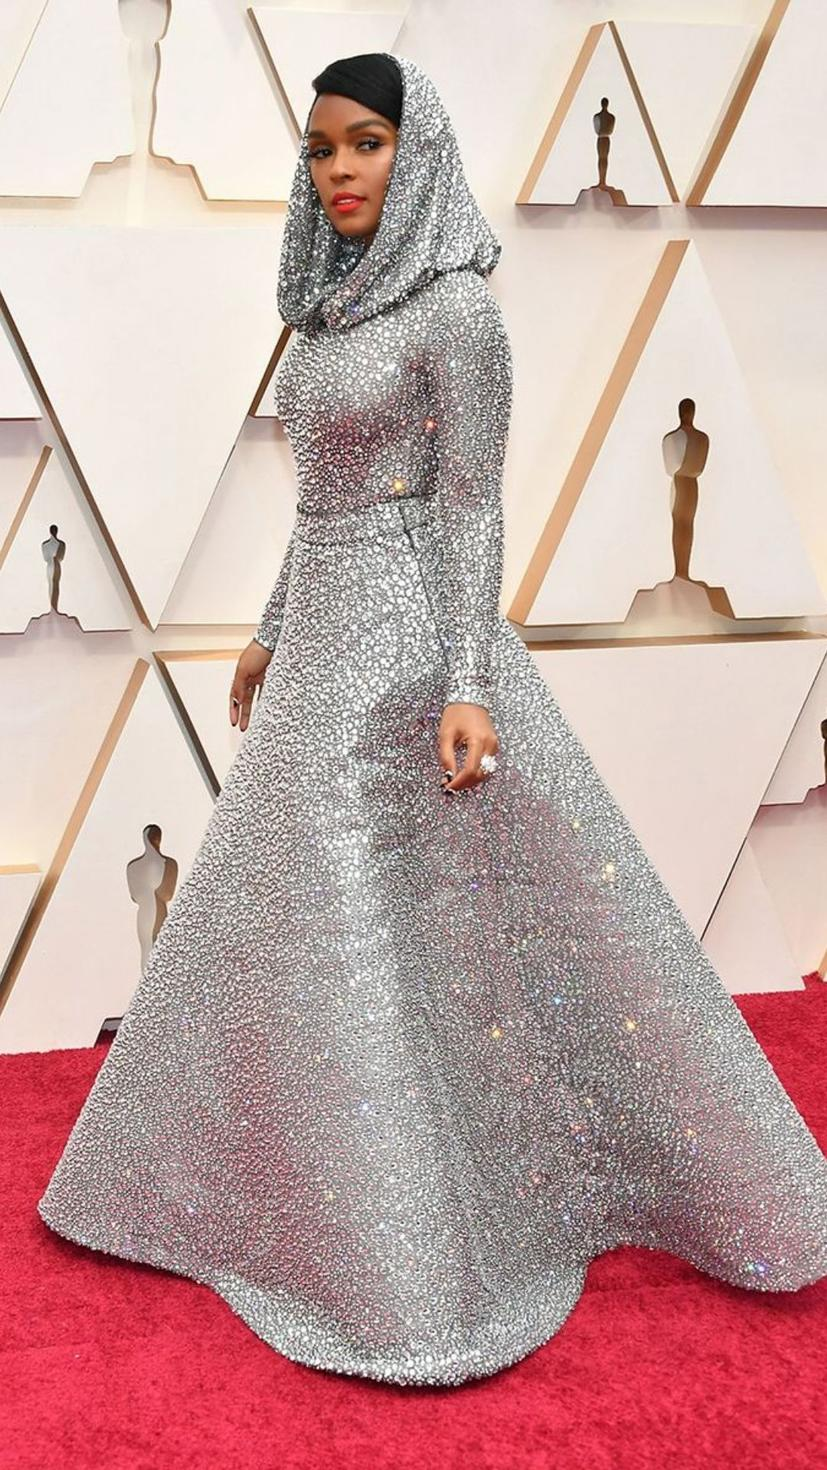 Janelle Monae wears a gown from Ralph Lauren and jewellery from Forevermark